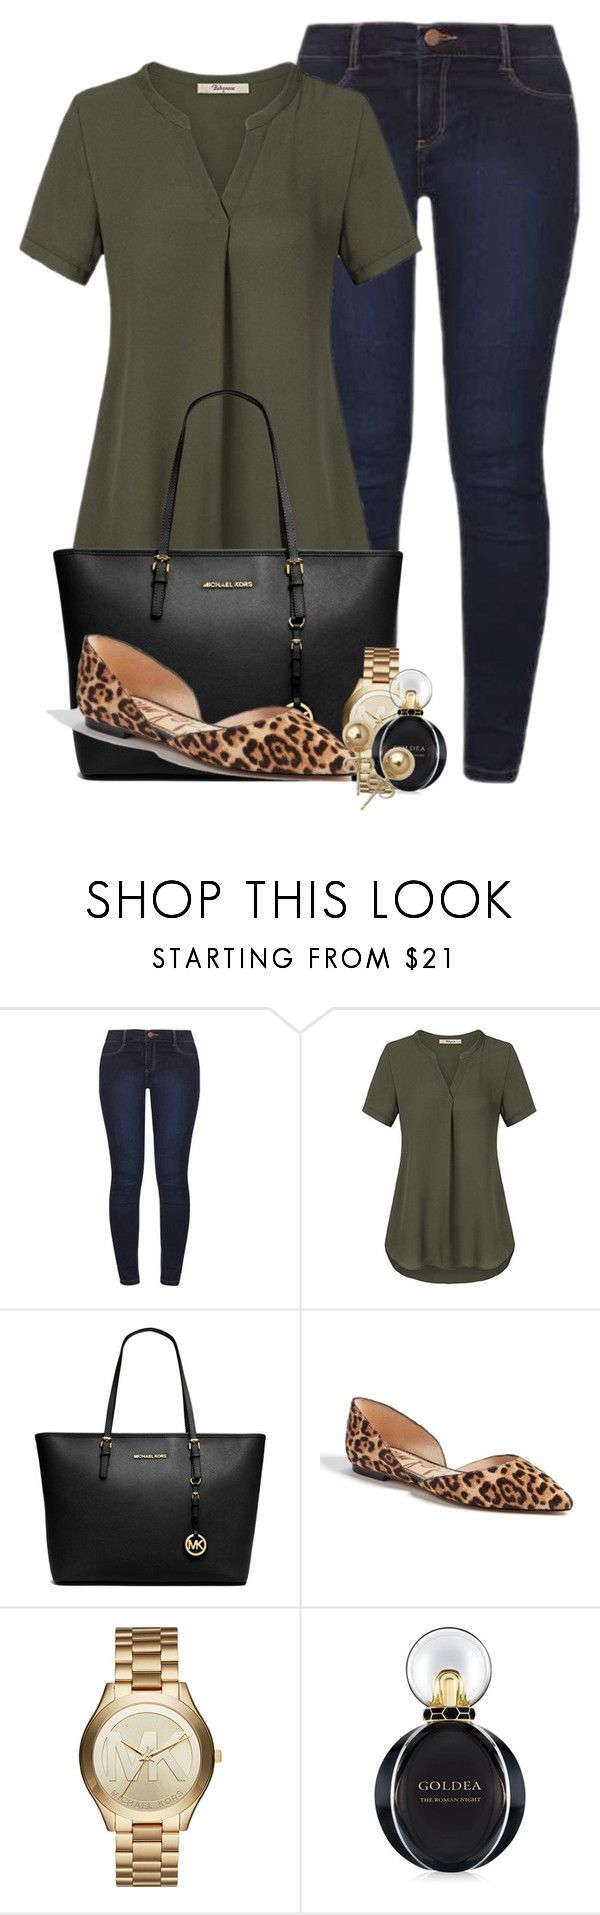 """""""Valley Girls"""" by mikamik on Polyvore featuring Dorothy Perkins, Michael Kors, Sam Edelman, Bulgari and Bling Jewelry"""